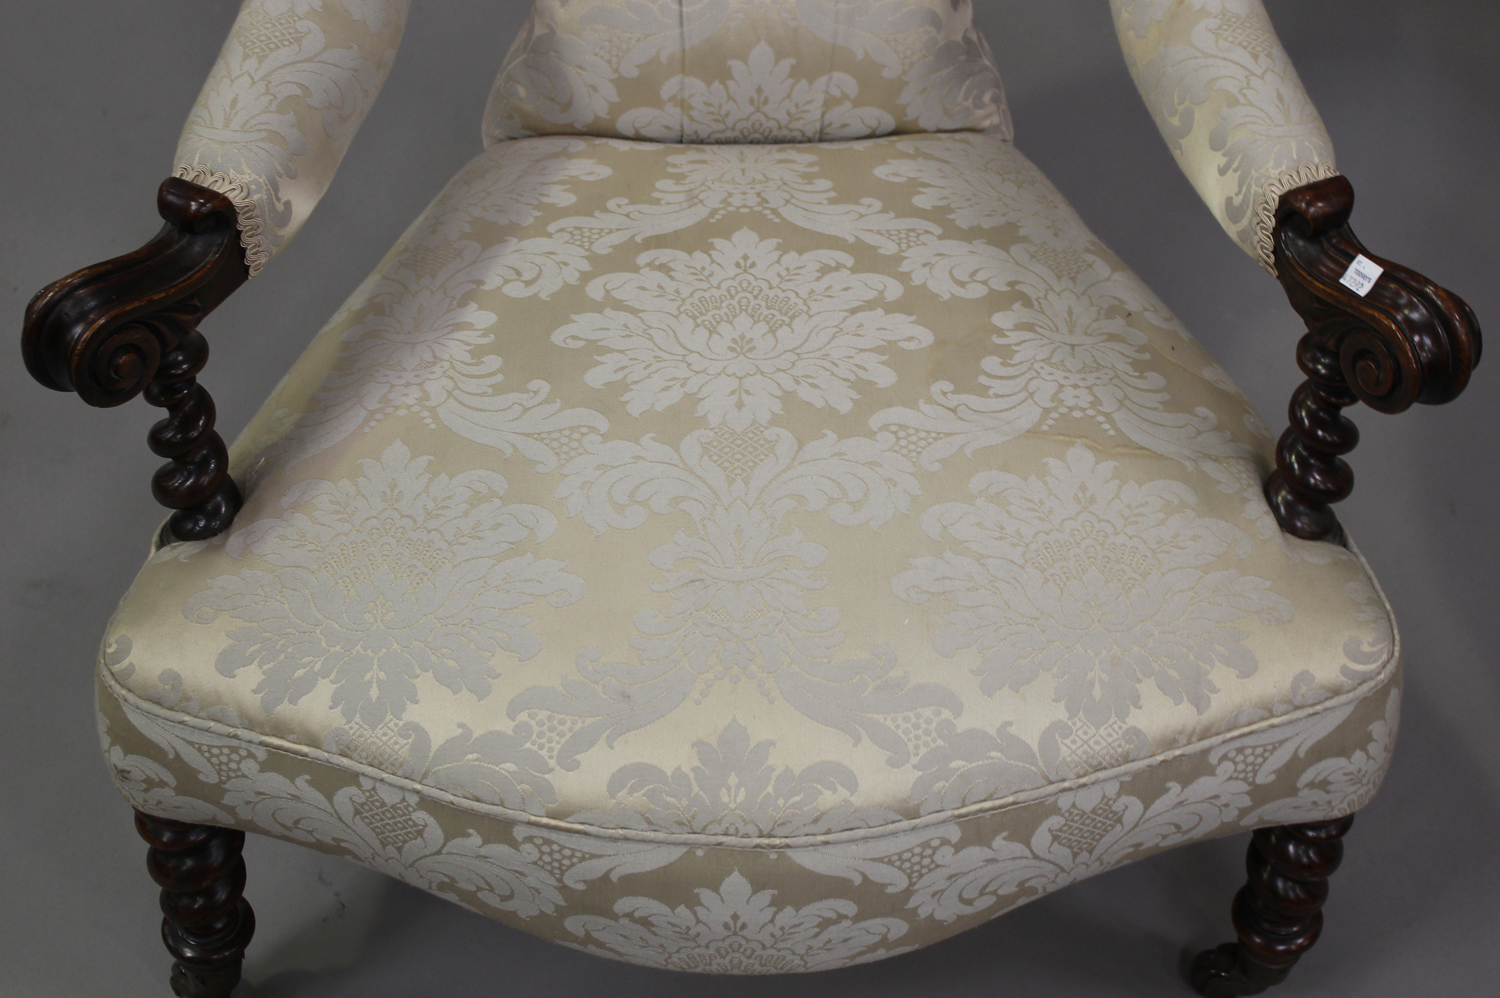 A 19th century mahogany framed scroll armchair, upholstered in blue damask, on barley twist legs, - Image 4 of 5